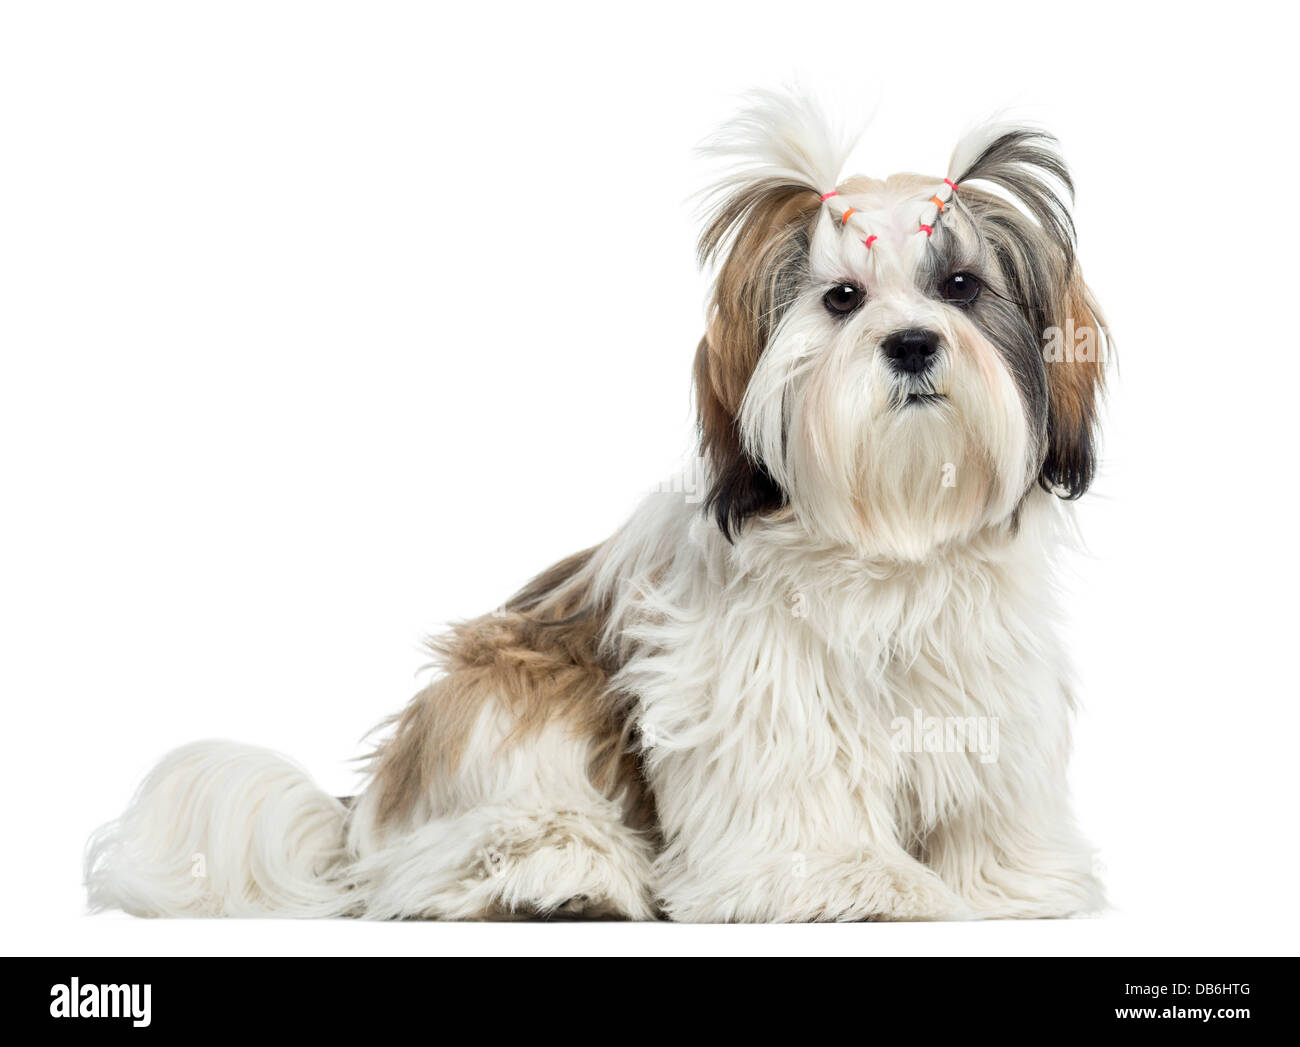 Lhassa apso sitting and looking at camera against white background - Stock Image